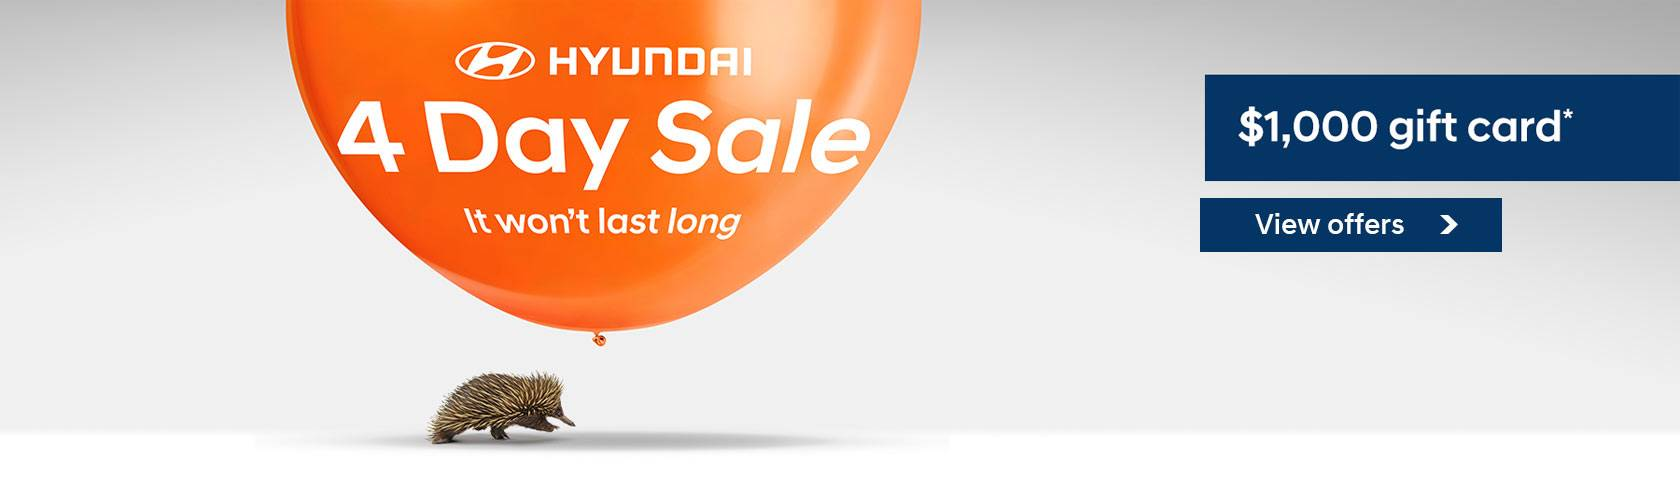 Hyundai Dealer 4 Day Sale